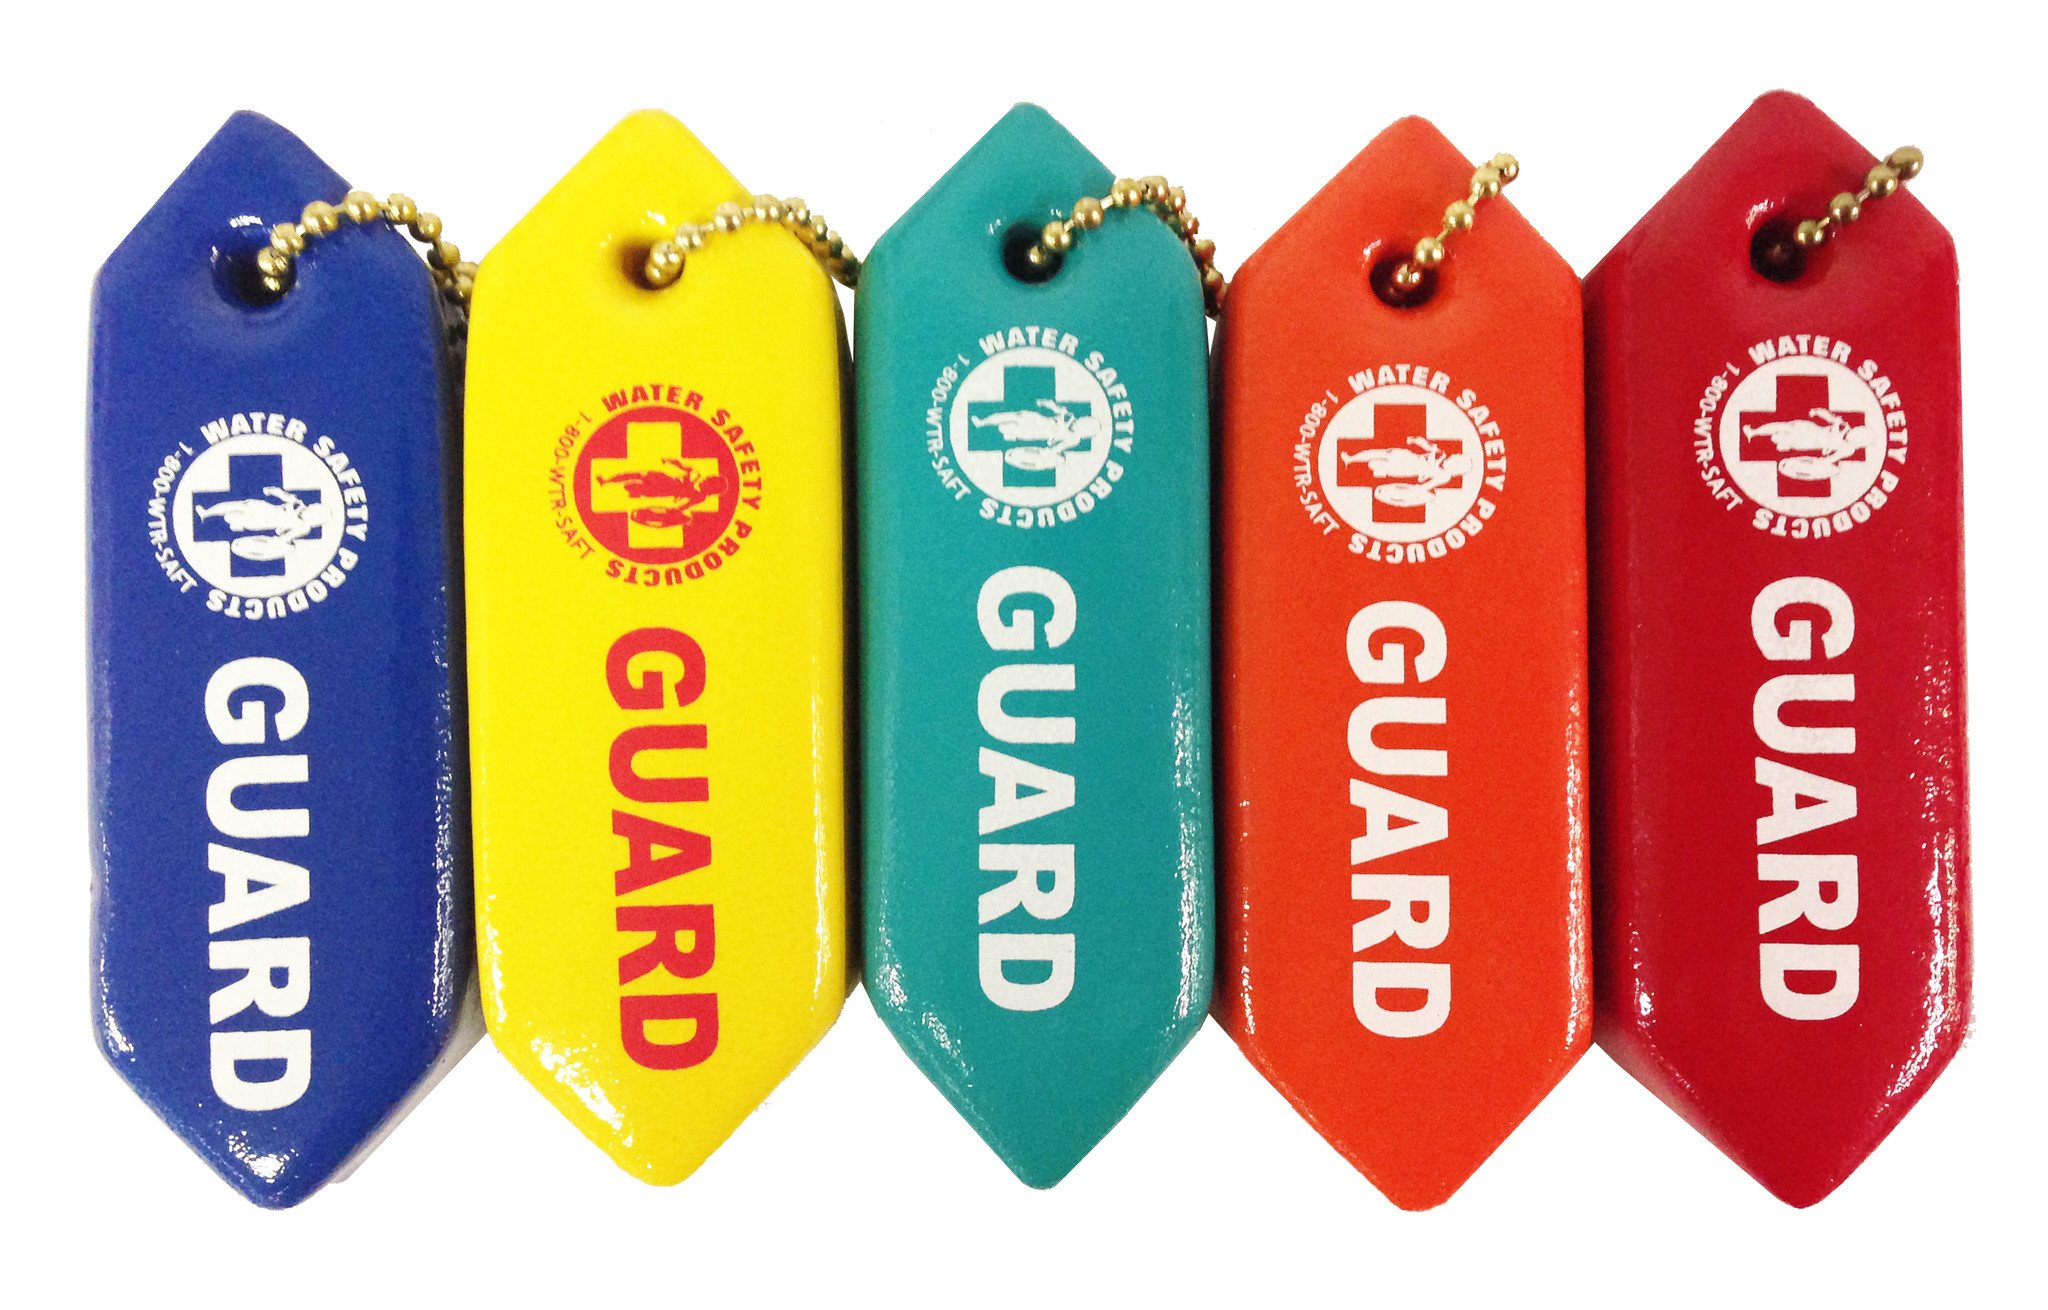 804d02464eb z710C-710C-lifeguard-rescue-tube-key-chain.jpg